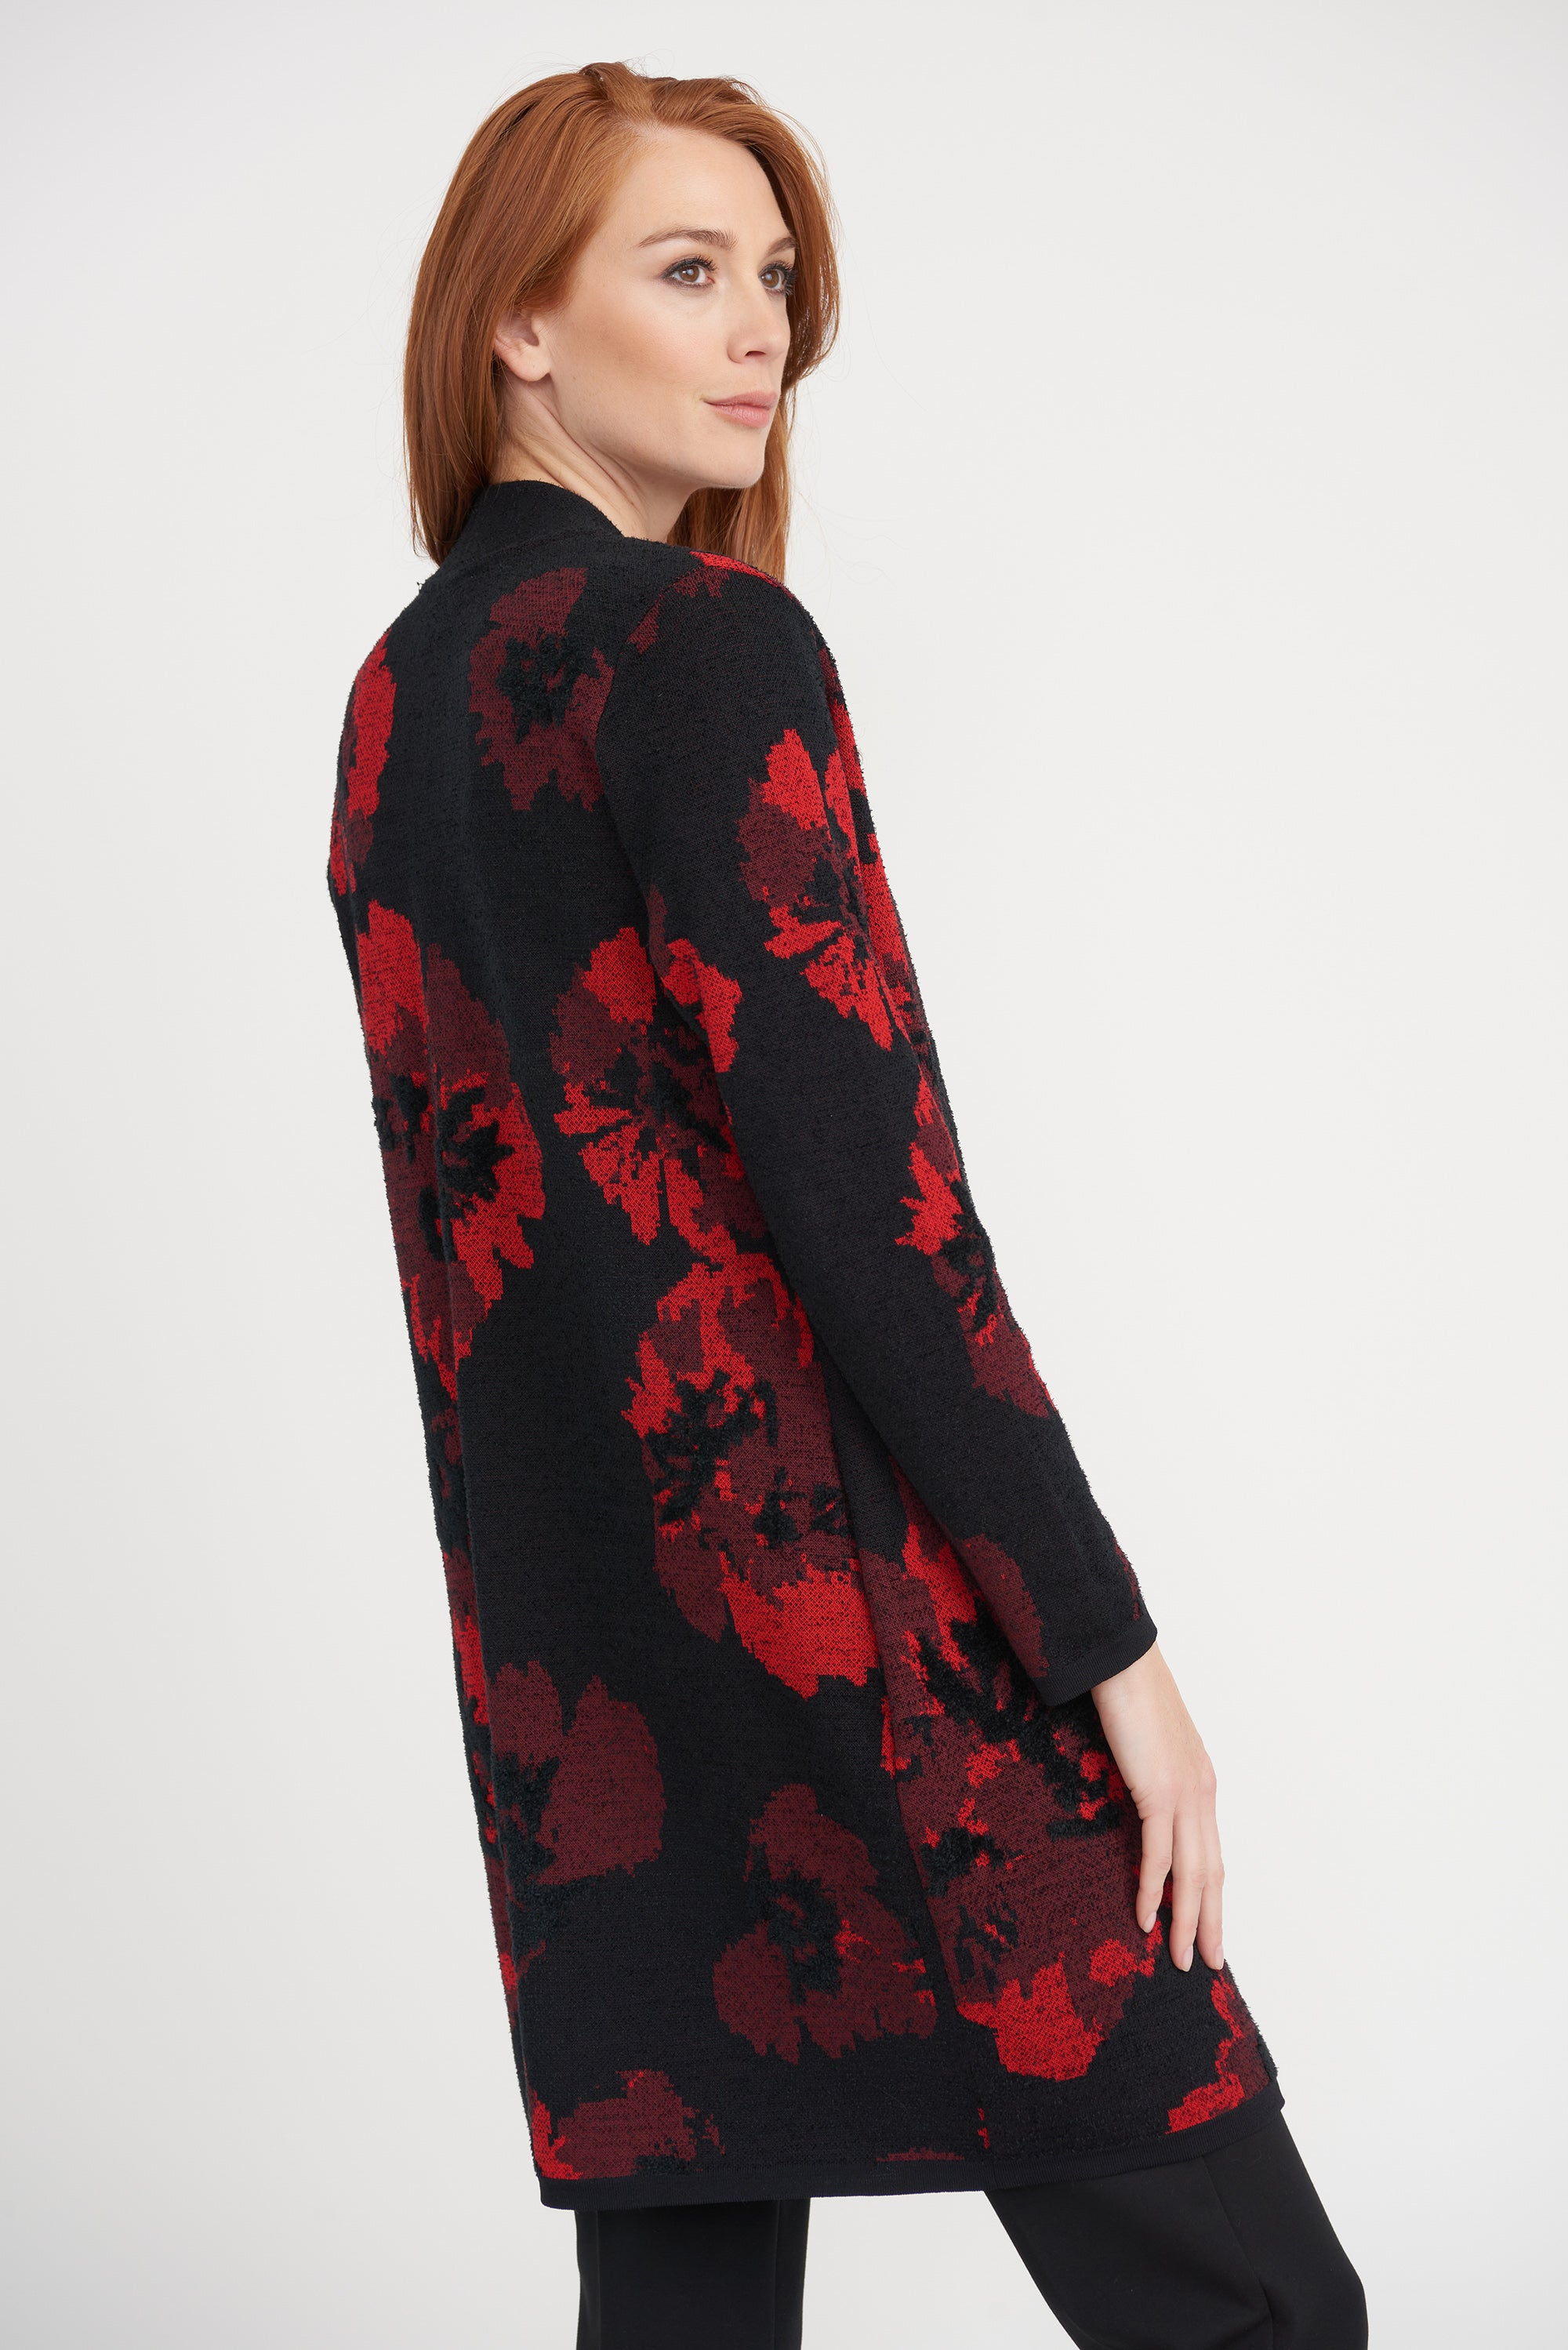 Joseph Ribkoff Red/Black Cover Up